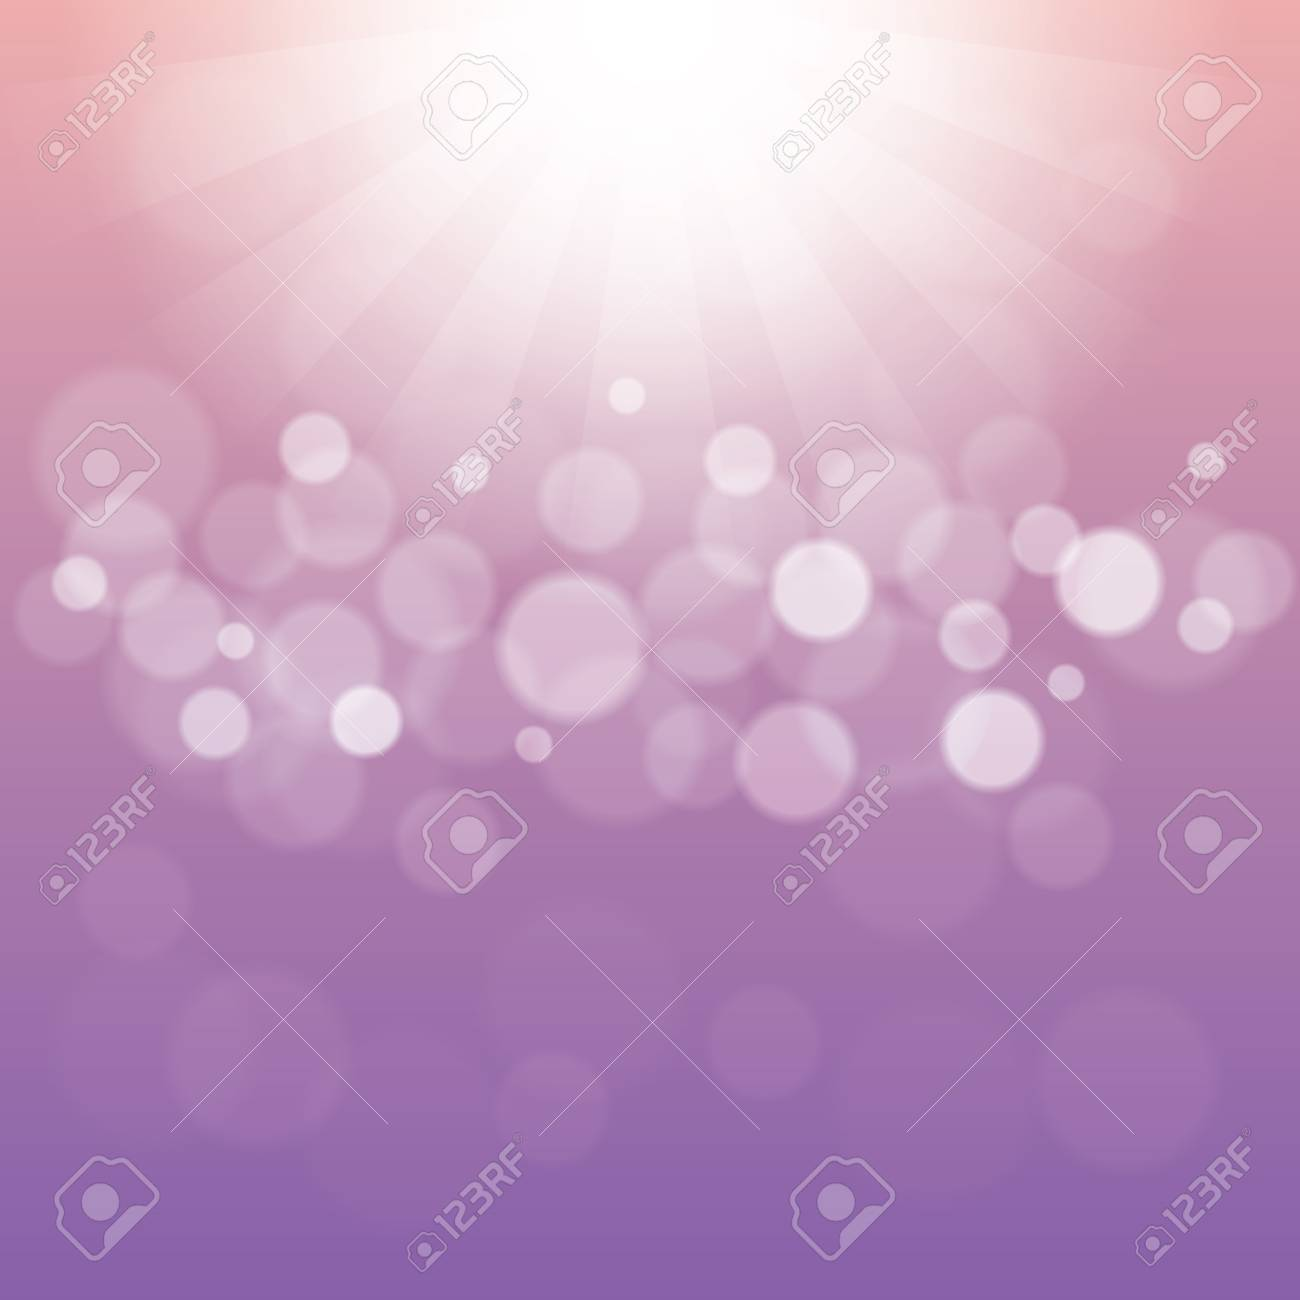 Abstract Light Purple Background with Bokeh Defocused Lights - 122660197